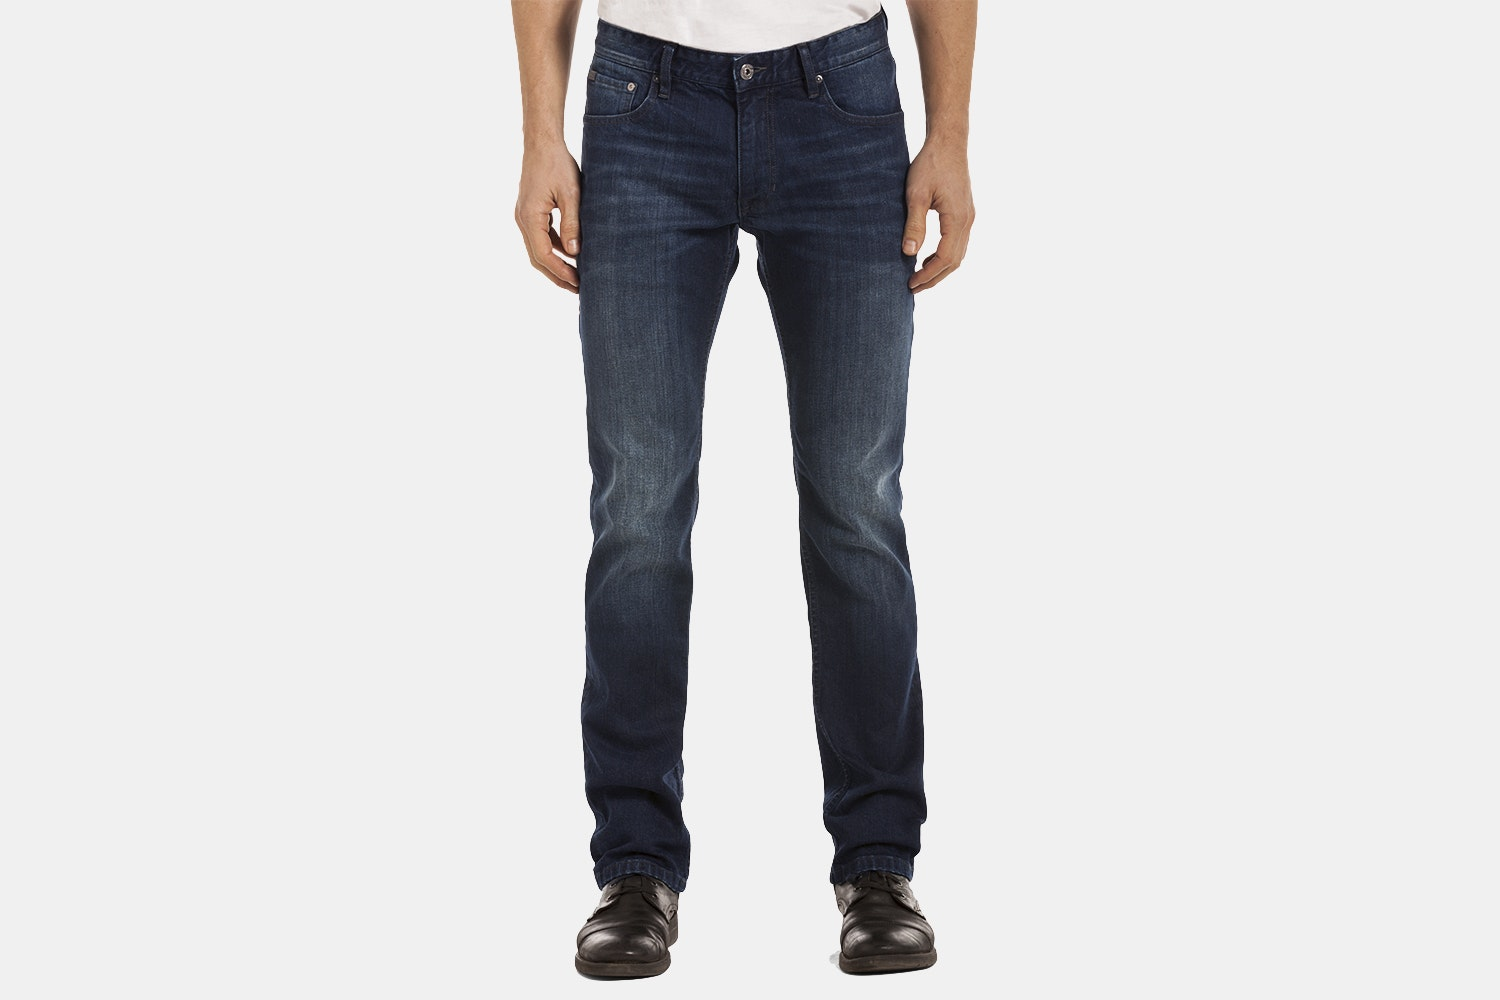 Slim Straight - Dark Wash